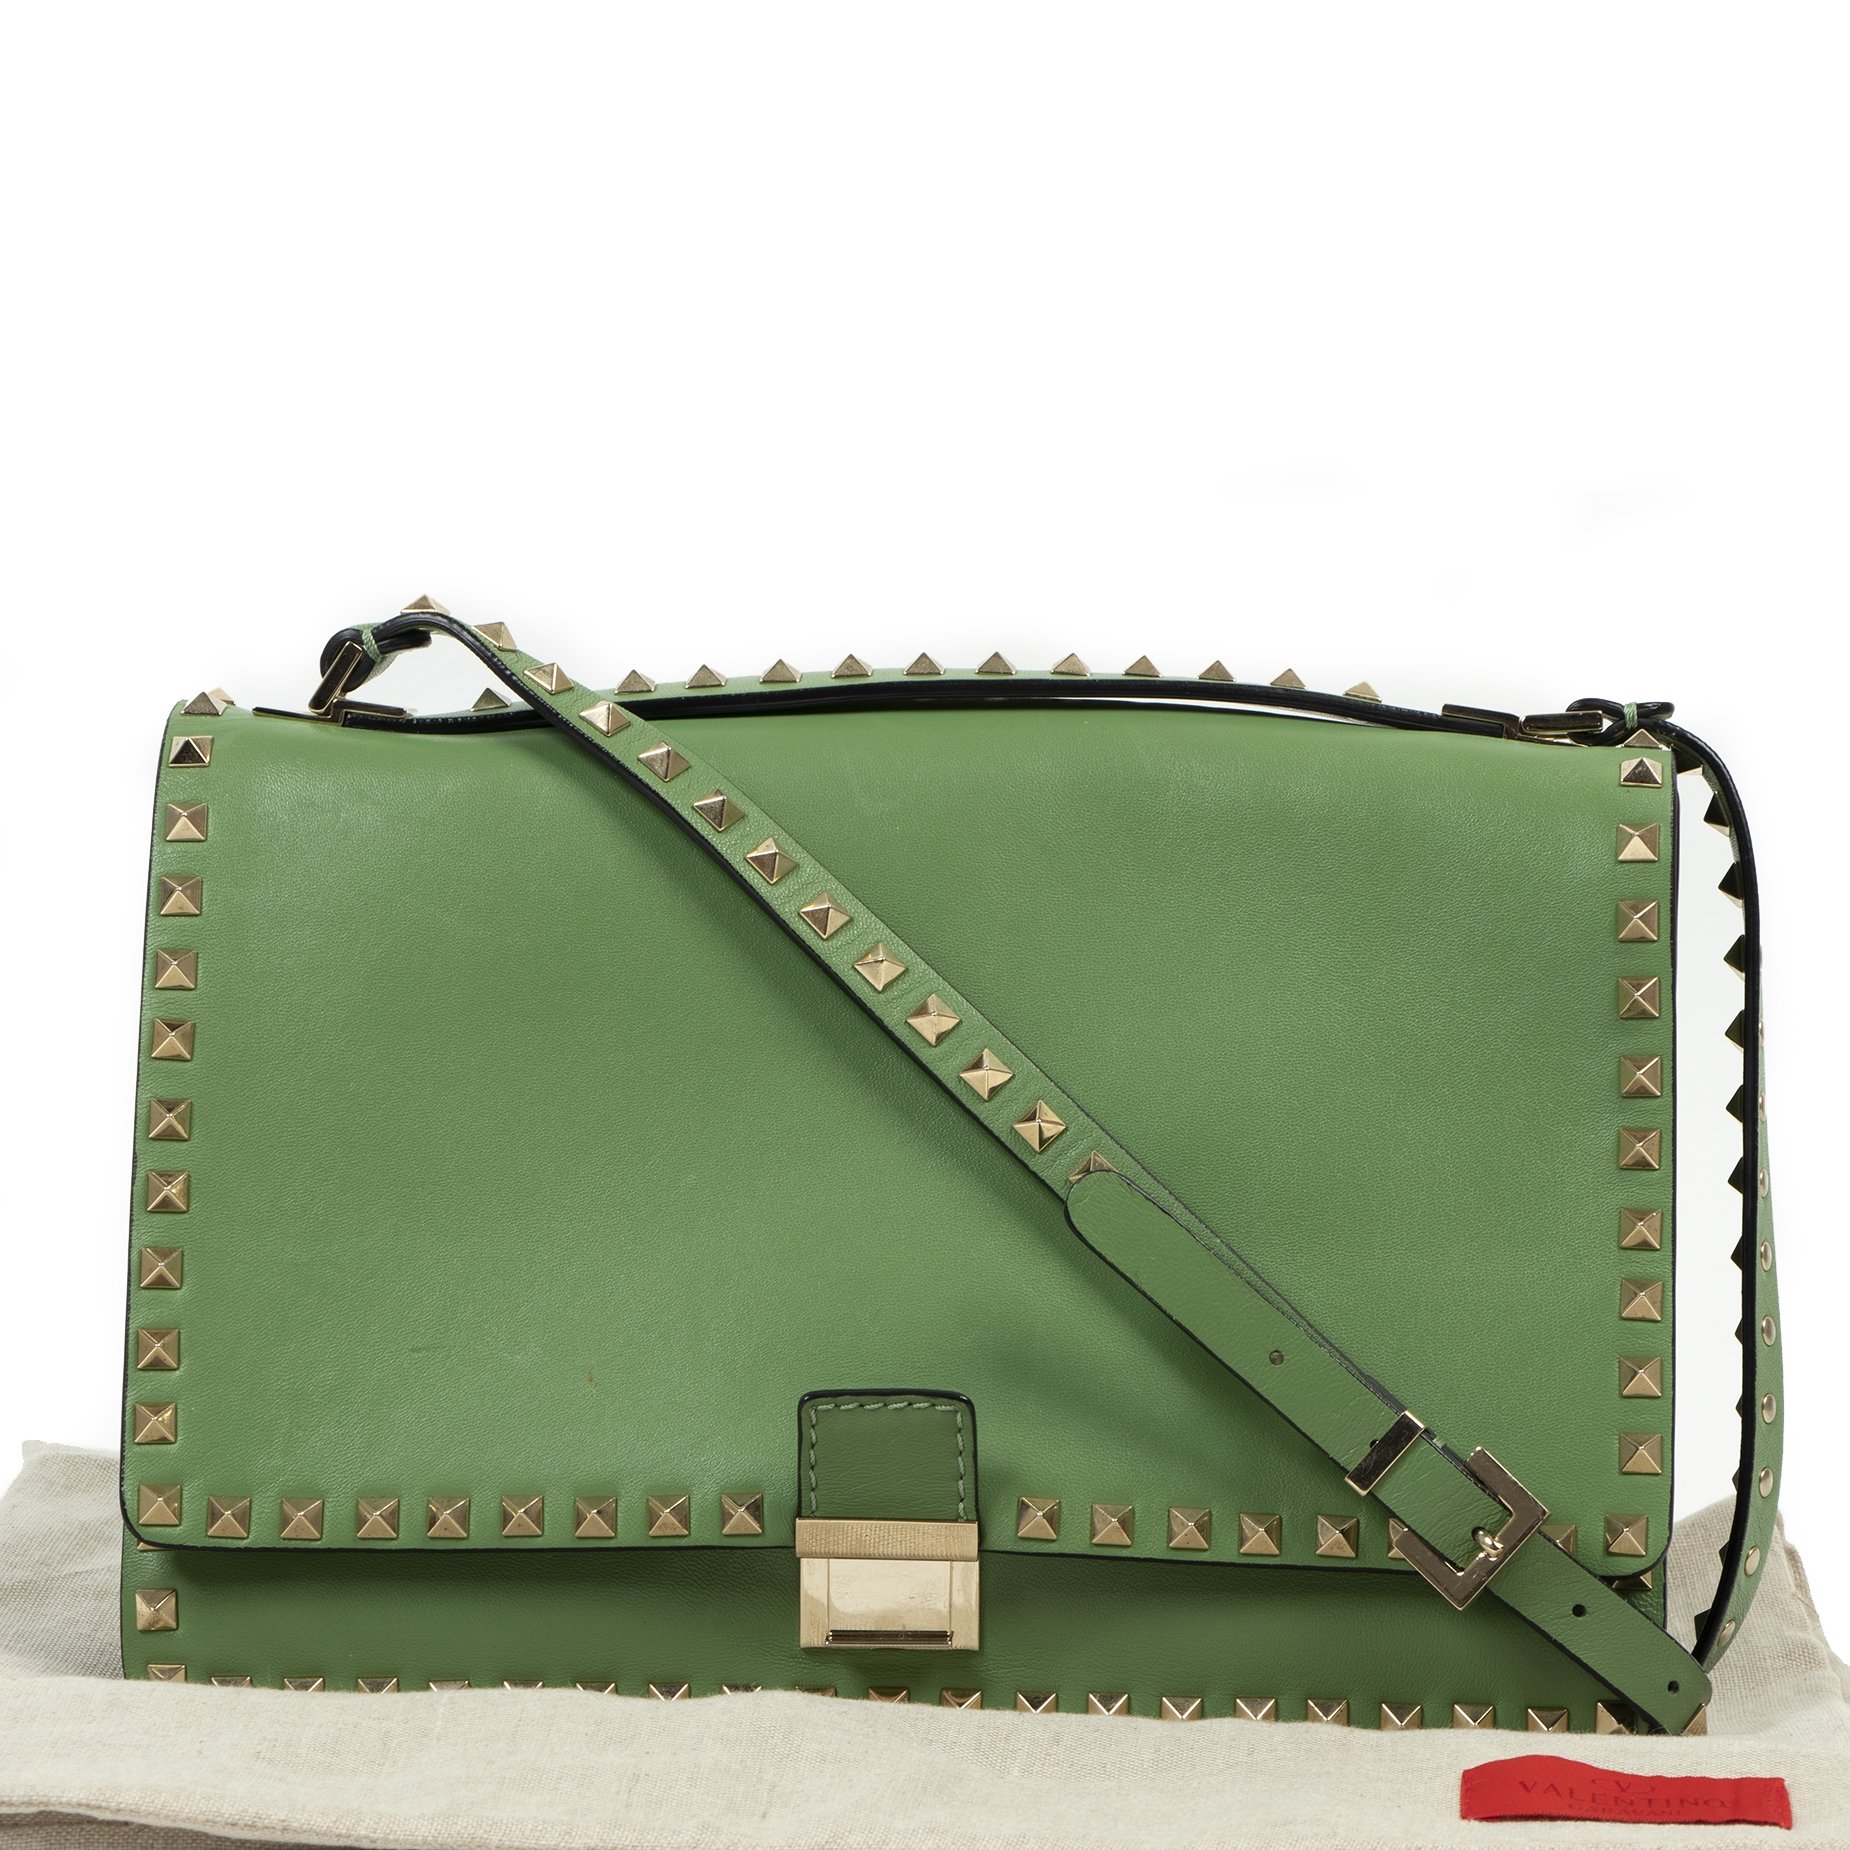 Authentieke tweedehands vintage Valentino Mint Green Rockstud Crossbody Bag koop online webshop LabelLOV